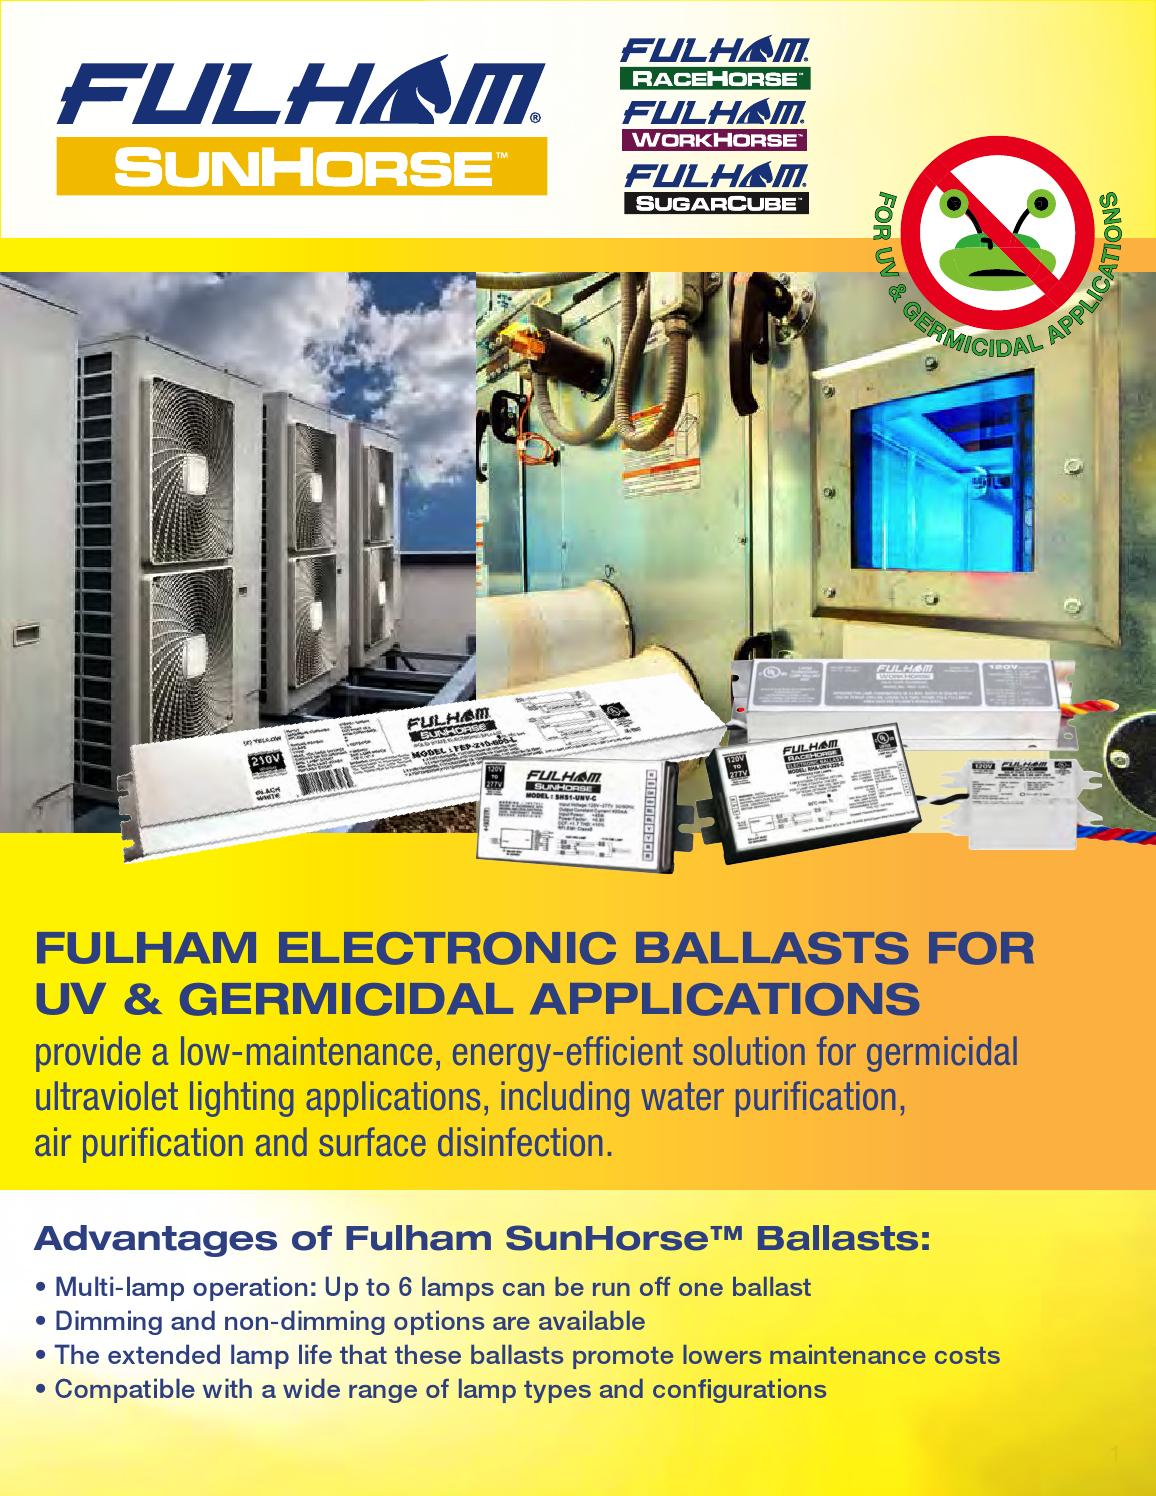 Fulham Electronic Ballasts For Germicidal Uv Ultraviolet Ballast Wiring Diagram Applications By Co Inc Issuu